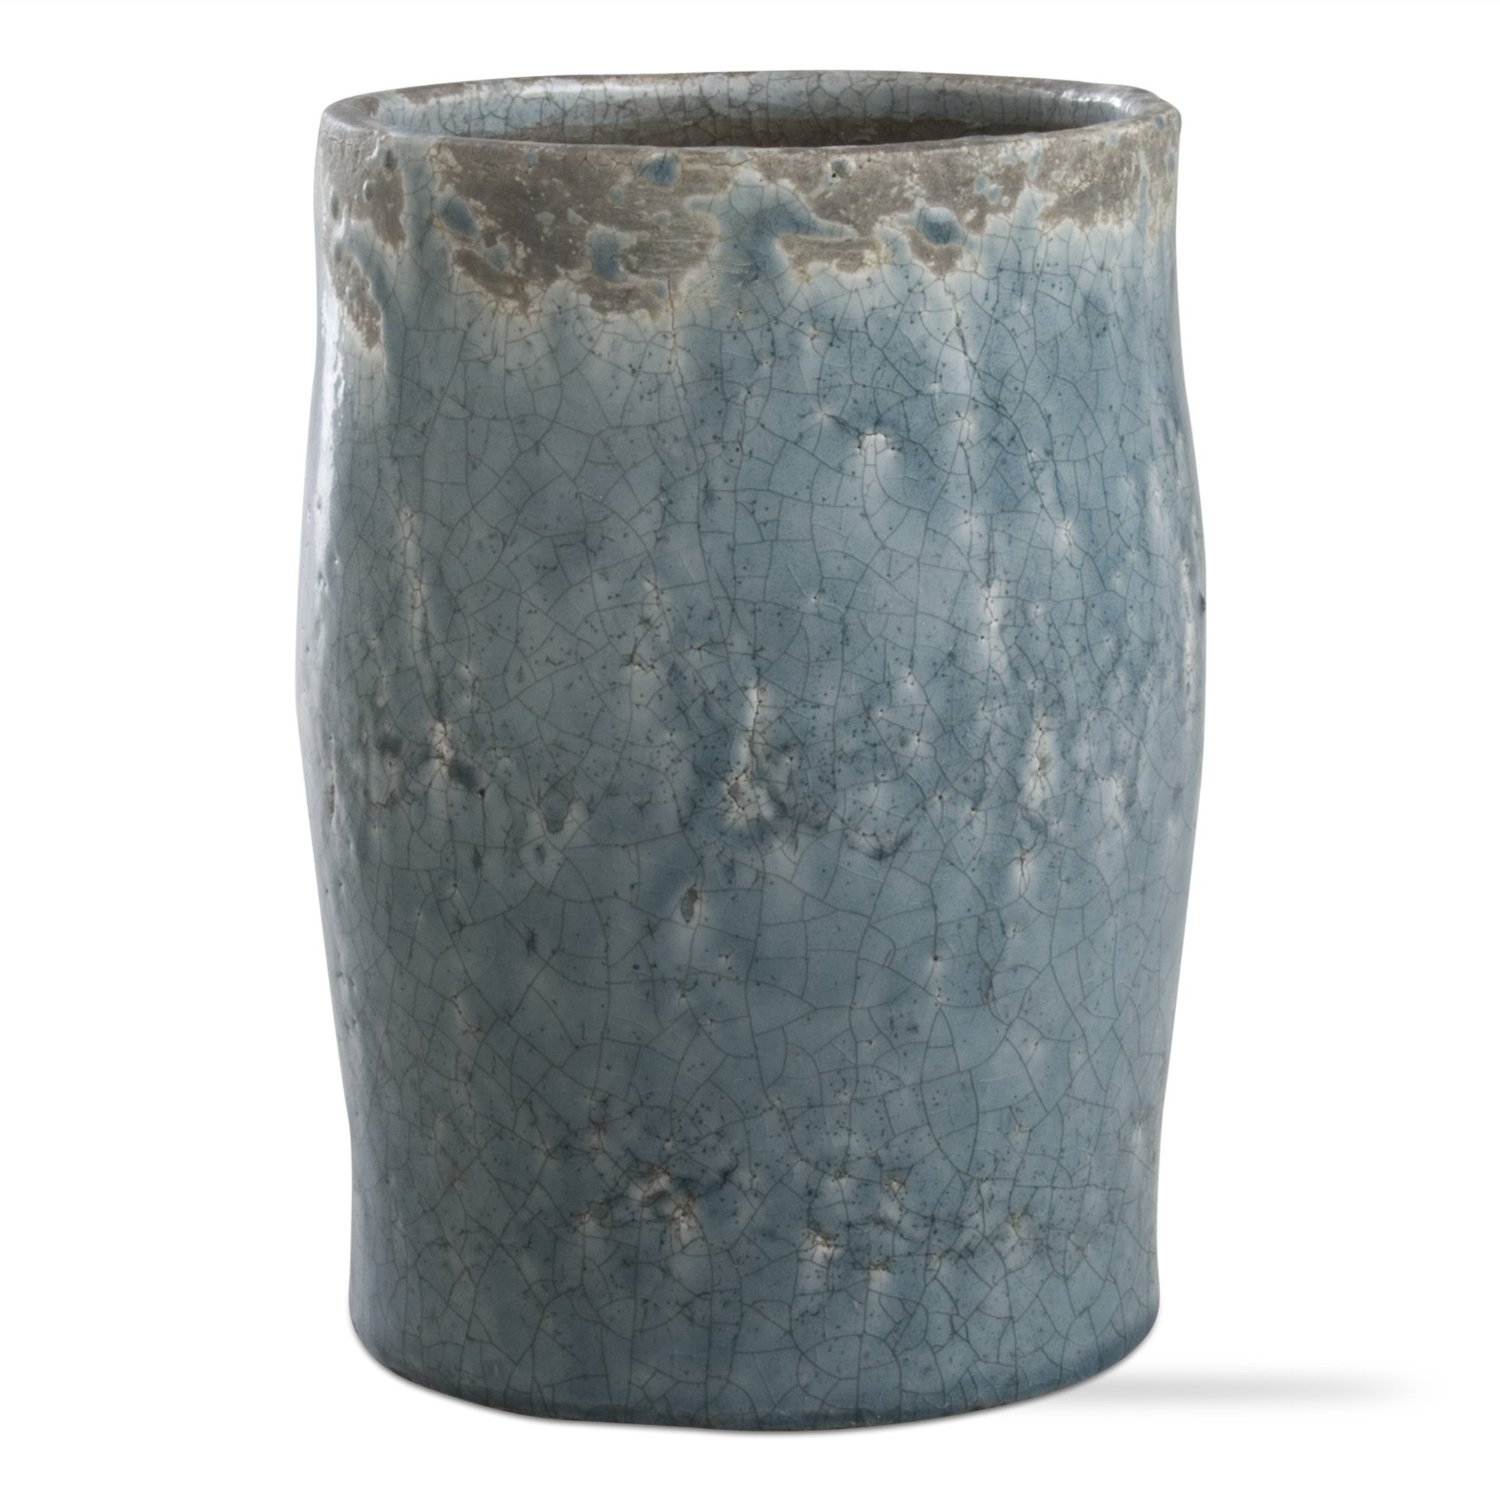 Cheap tall blue vase find tall blue vase deals on line at alibaba get quotations tag 205329 crackle glazed rustic vase tall blue and aqua 825 inch high reviewsmspy